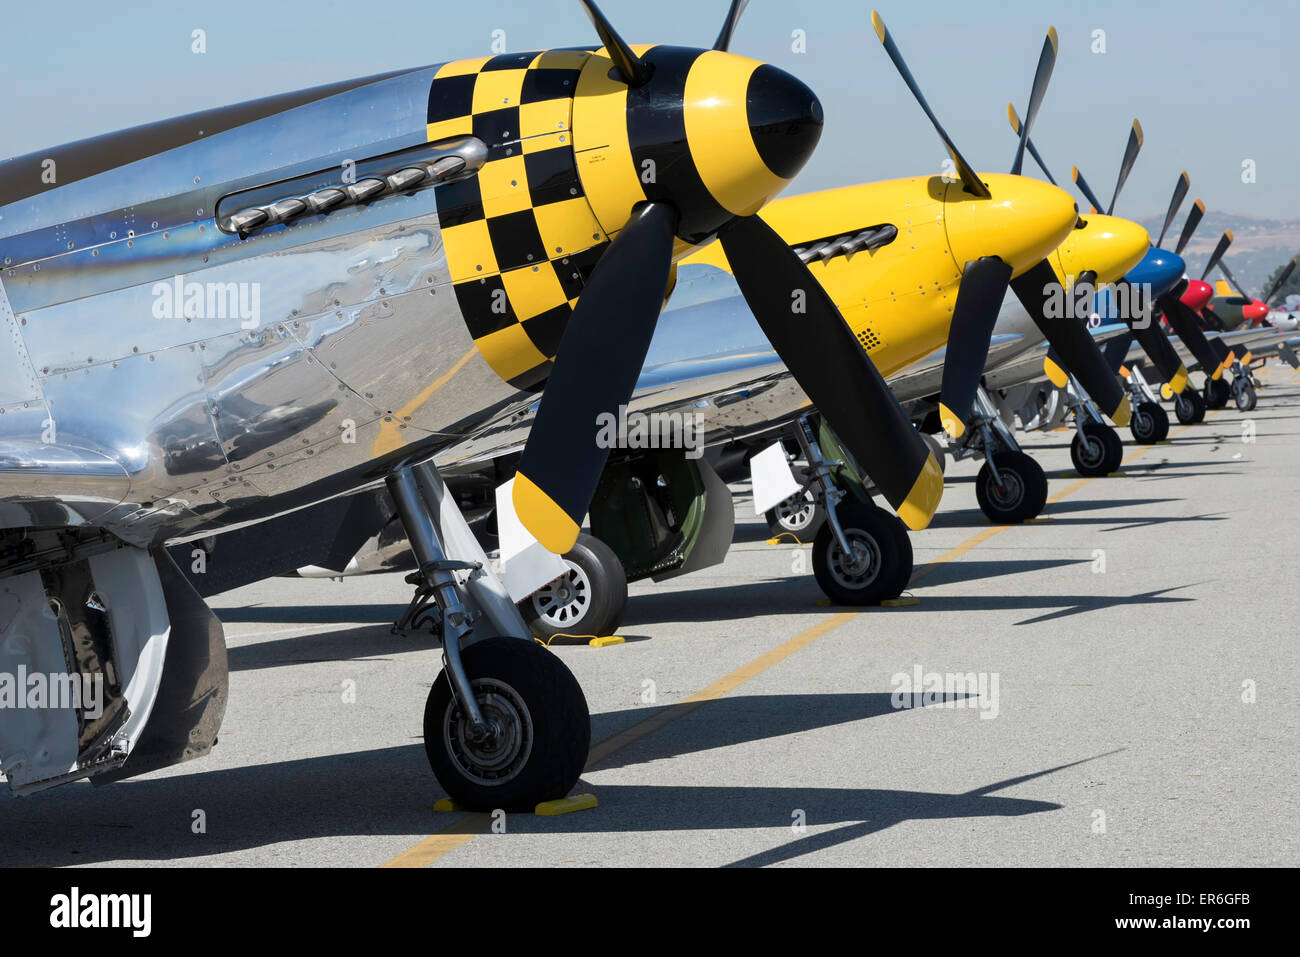 WW2 fighter planes at the ready - Stock Image